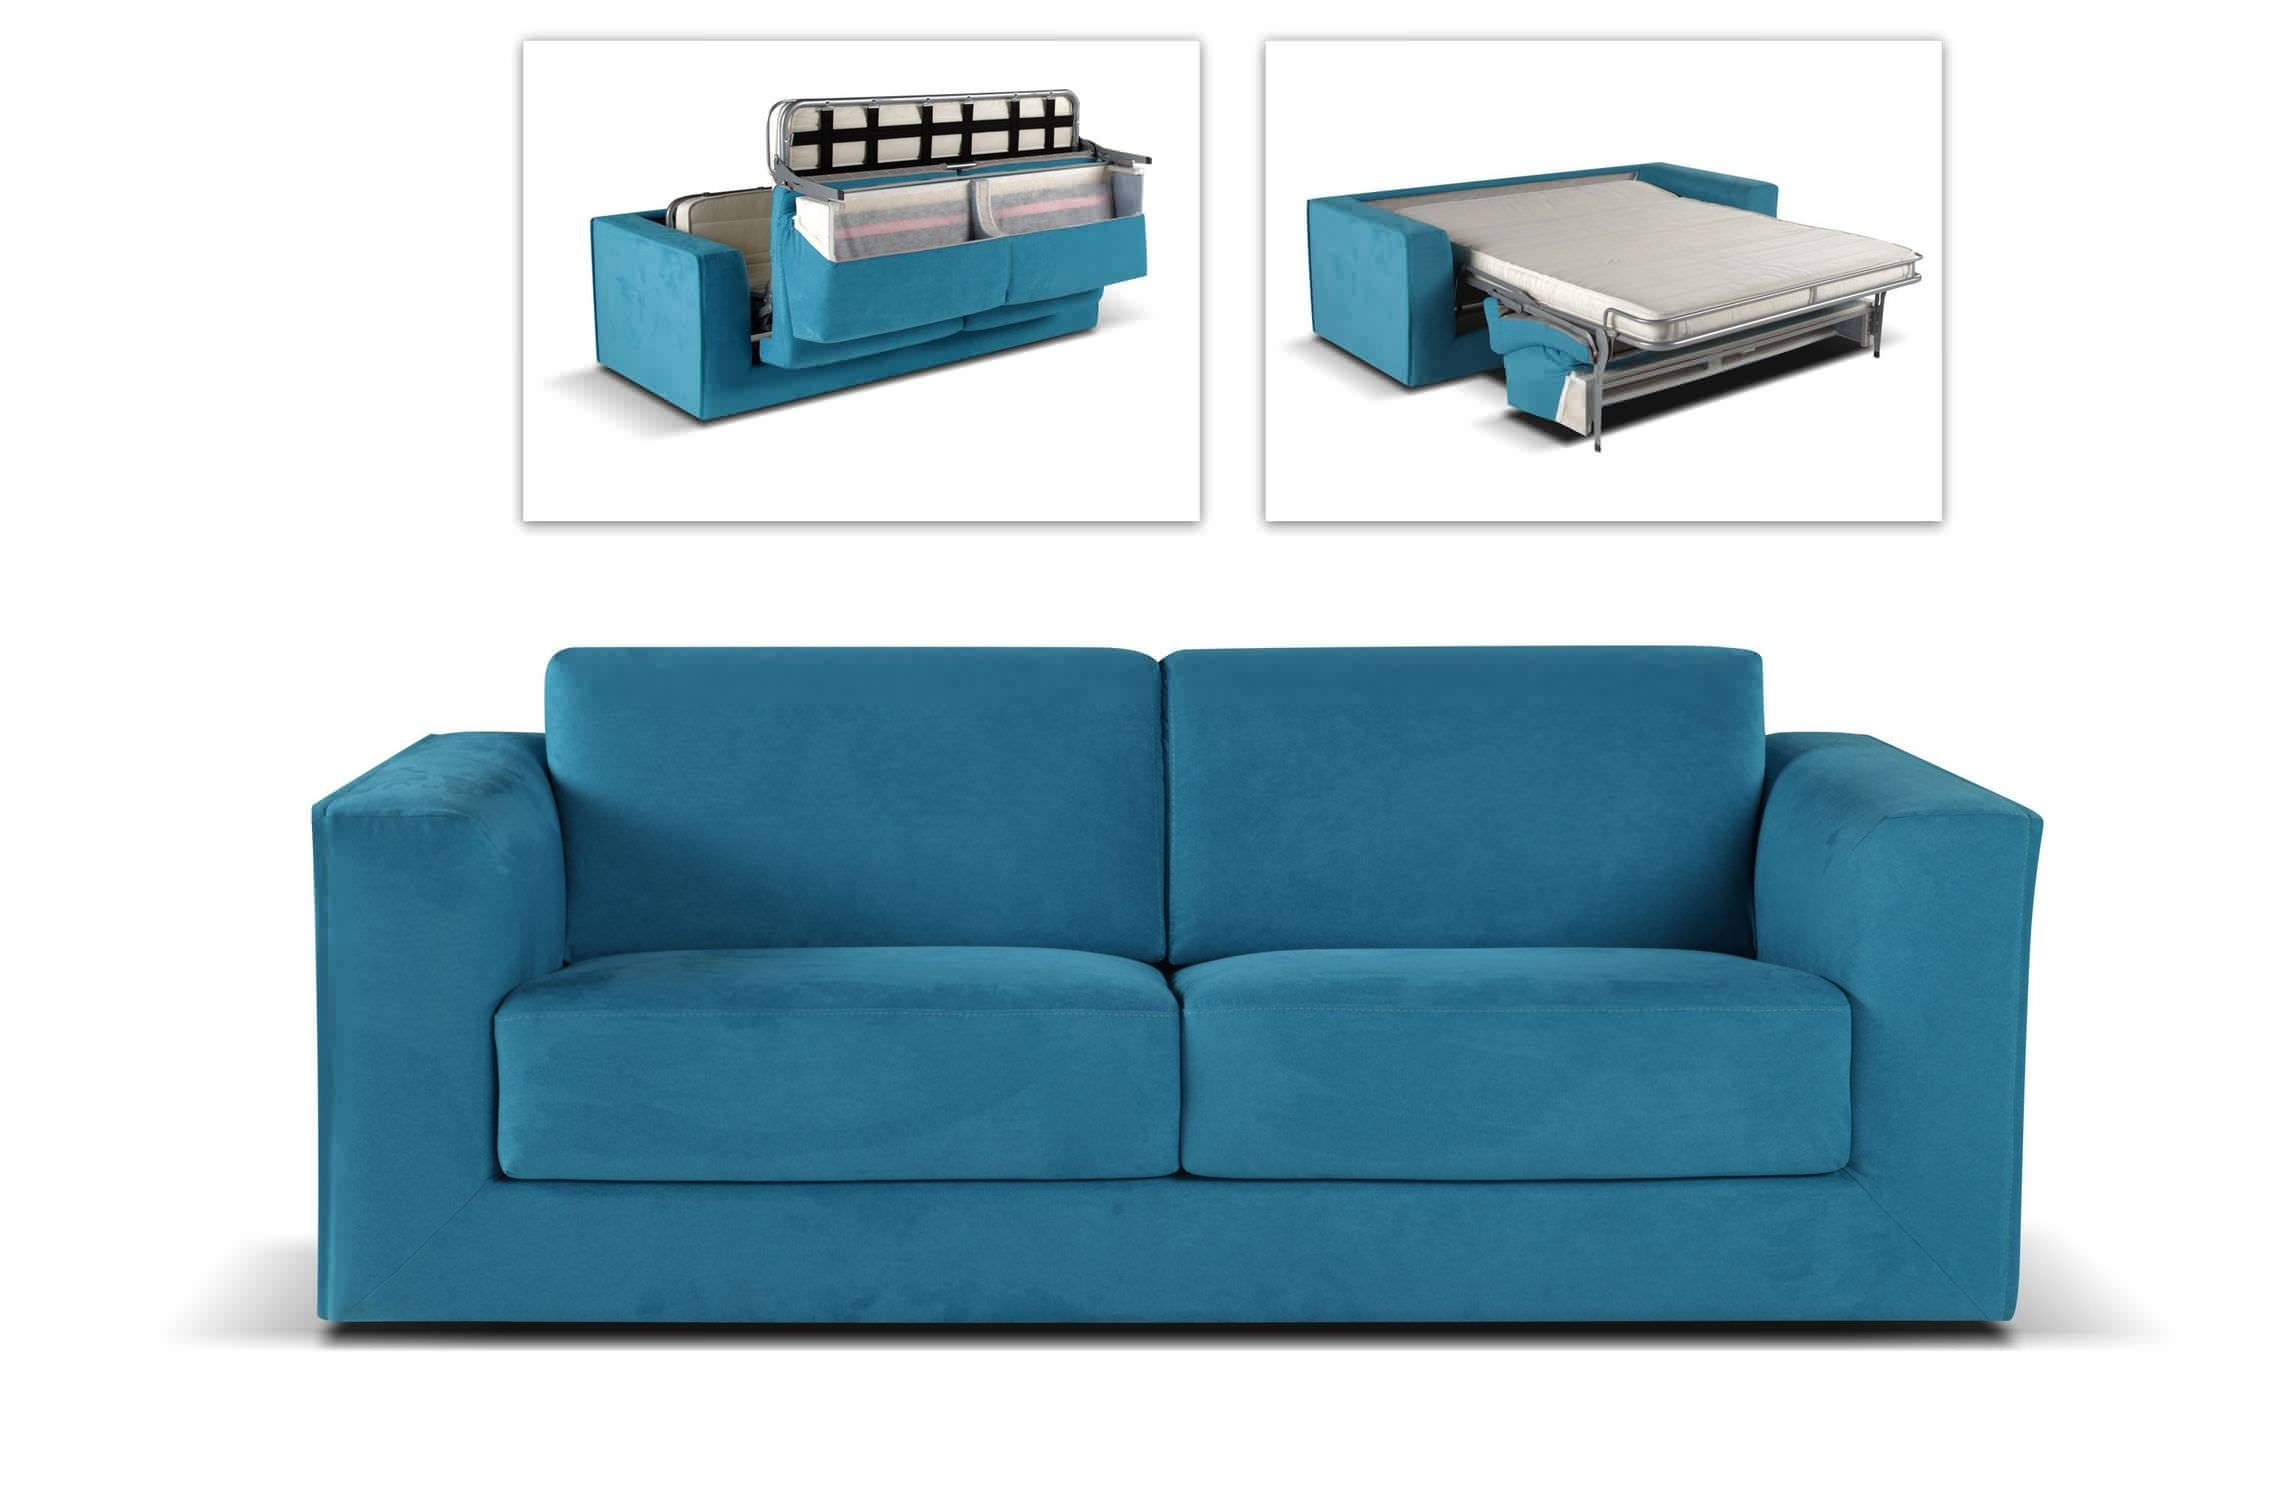 Ikea single sofa for Chair that turns into a bed ikea